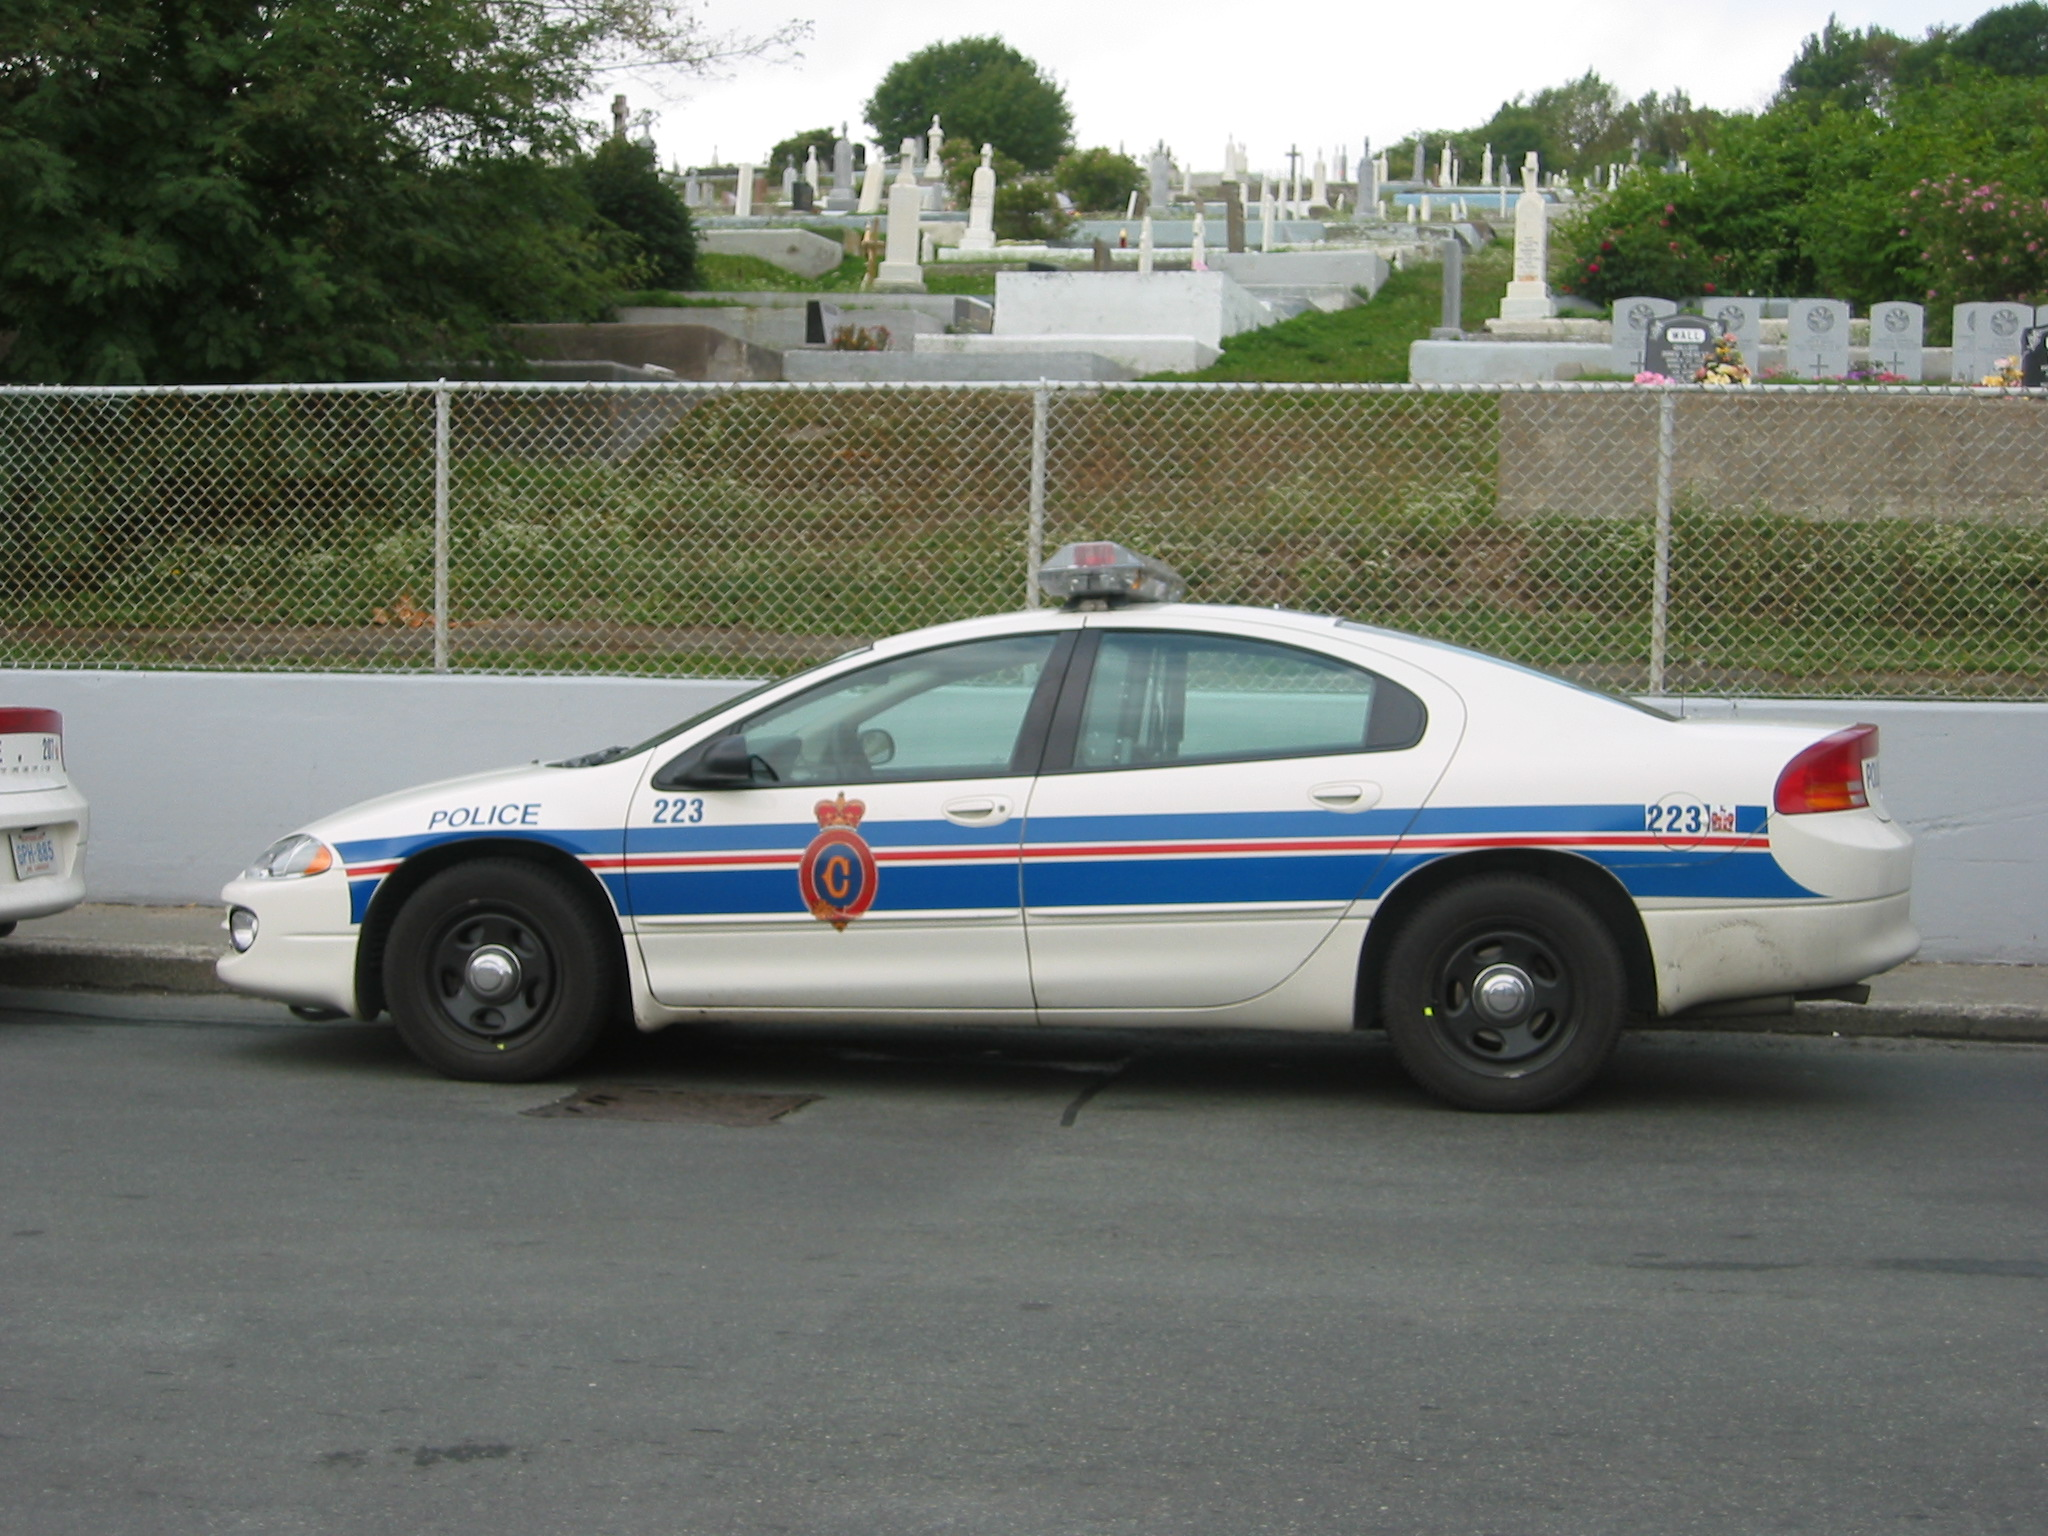 File:Royal Newfoundland Constabulatory Dodge Intrepid police car.jpg